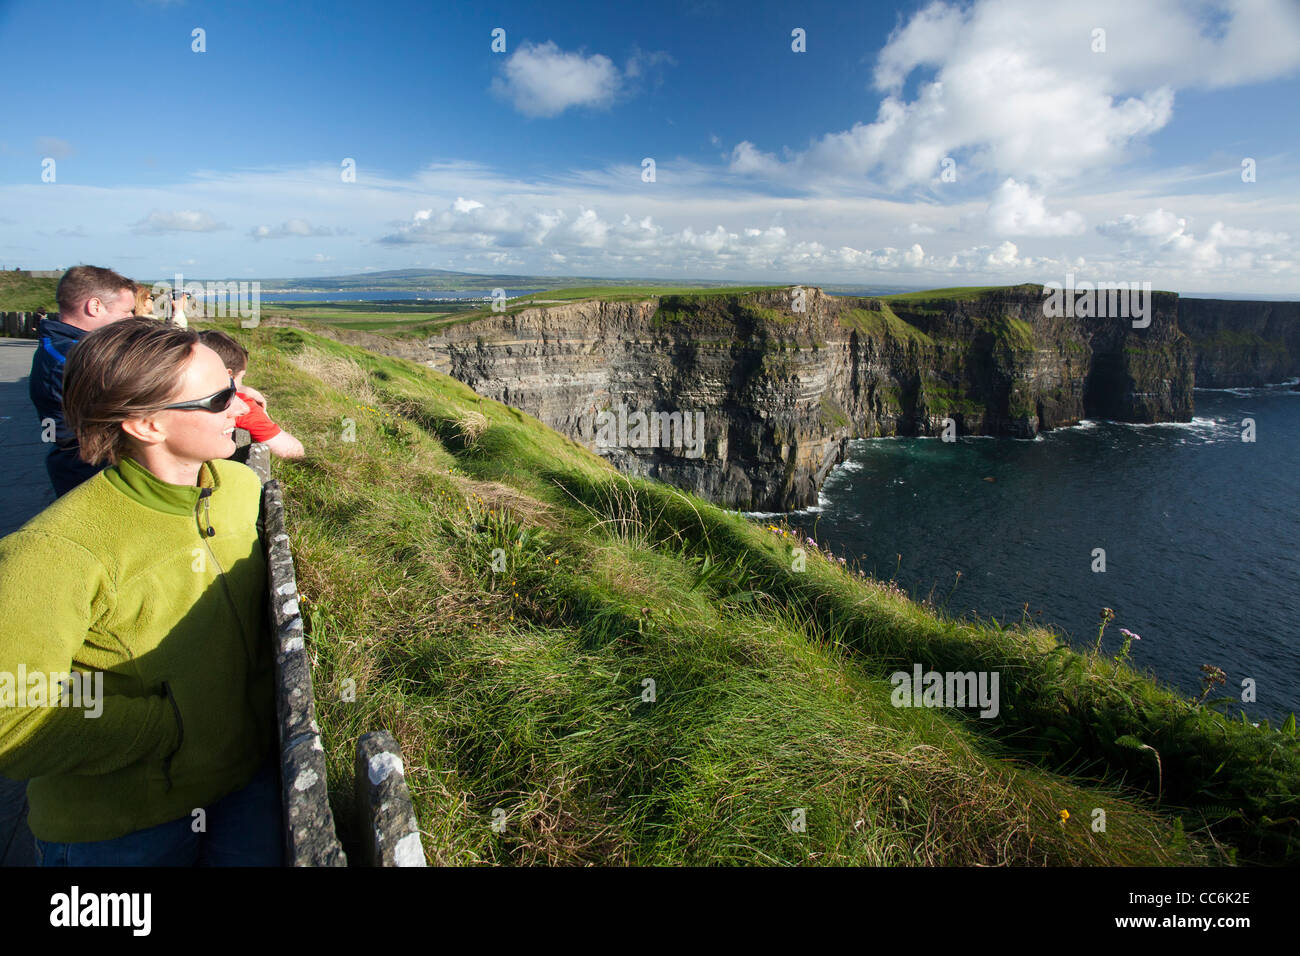 Tourists enjoying the view at the Cliffs of Moher, The Burren, County Clare, Ireland. - Stock Image